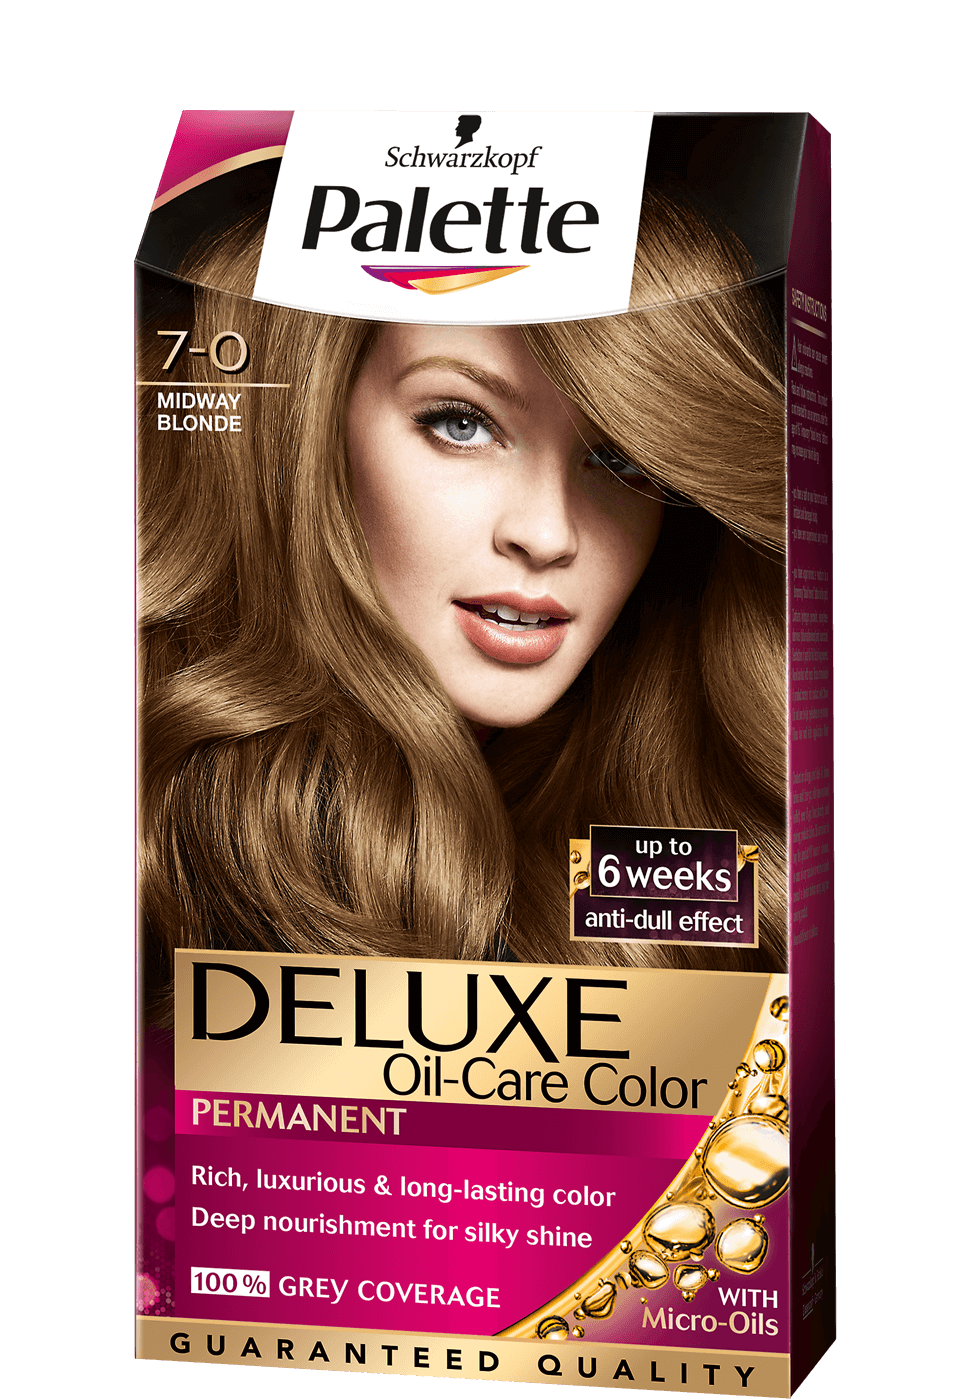 palette_com_deluxe_baseline_7-0_midway_blonde_970x1400